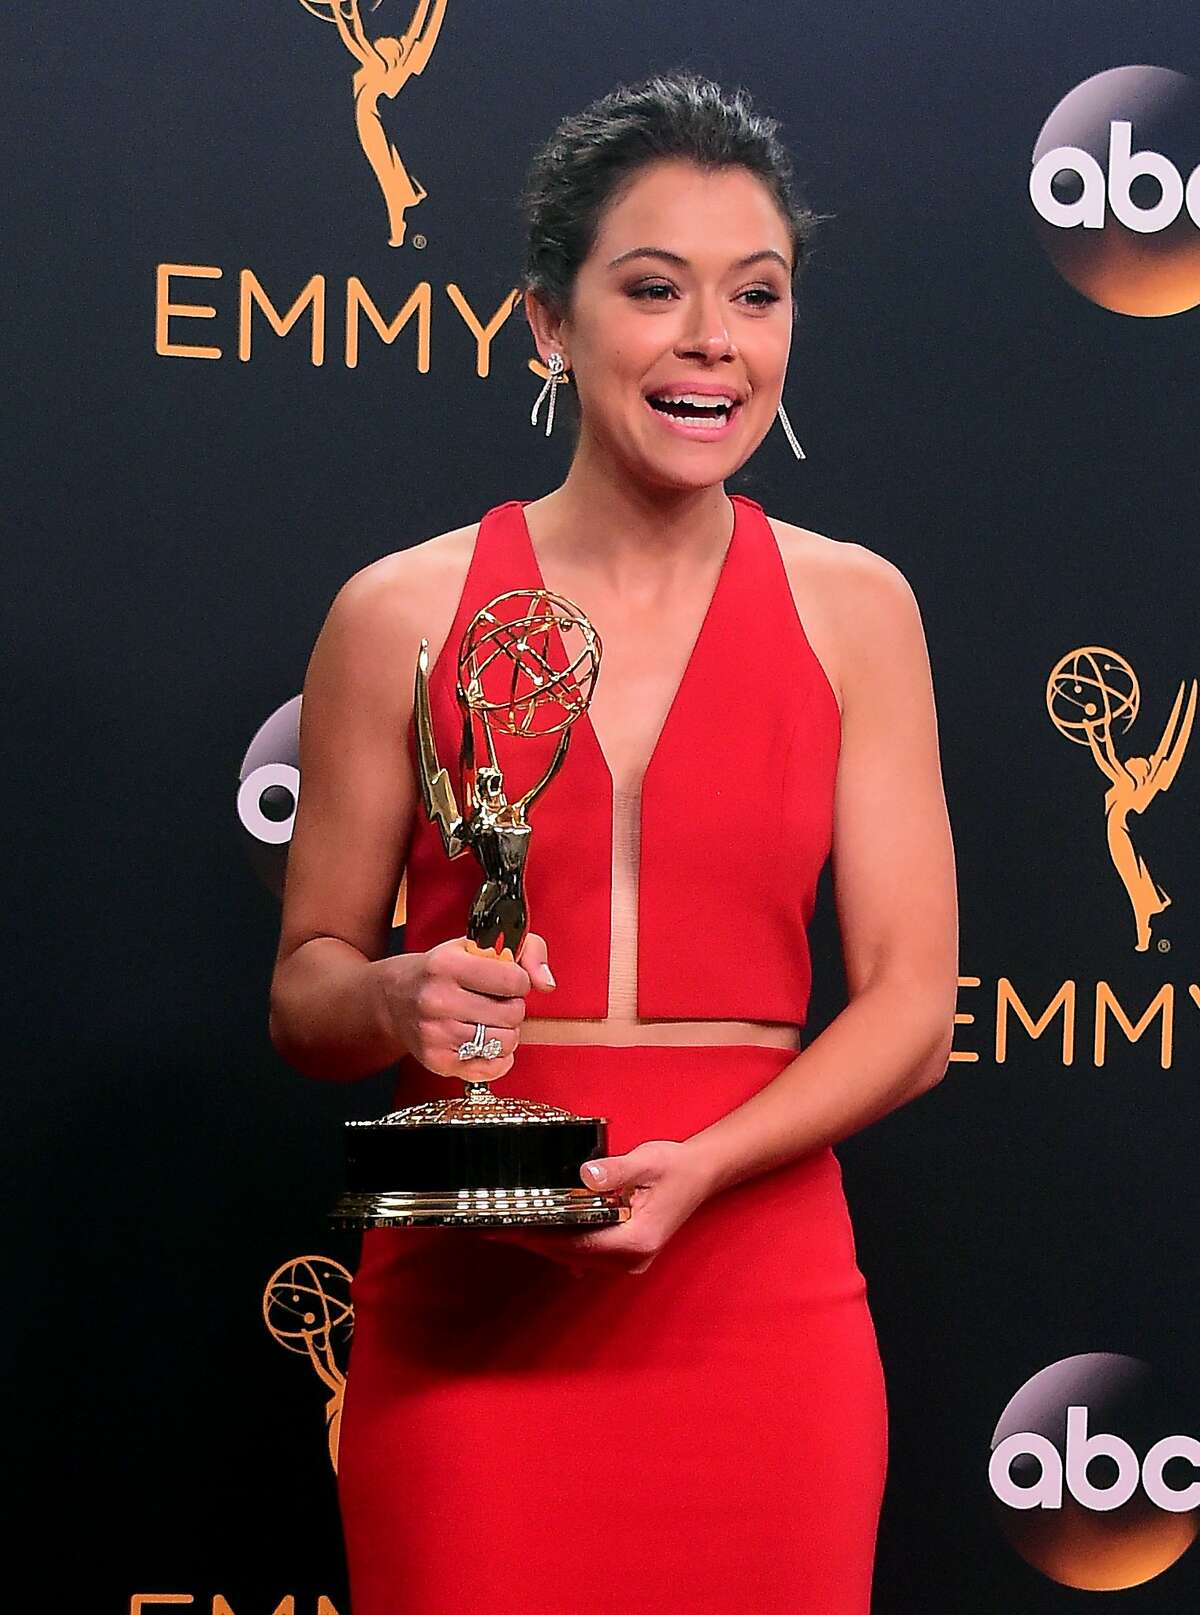 Tatiana Maslany, winner of Outstanding Actress in a Drama Series for